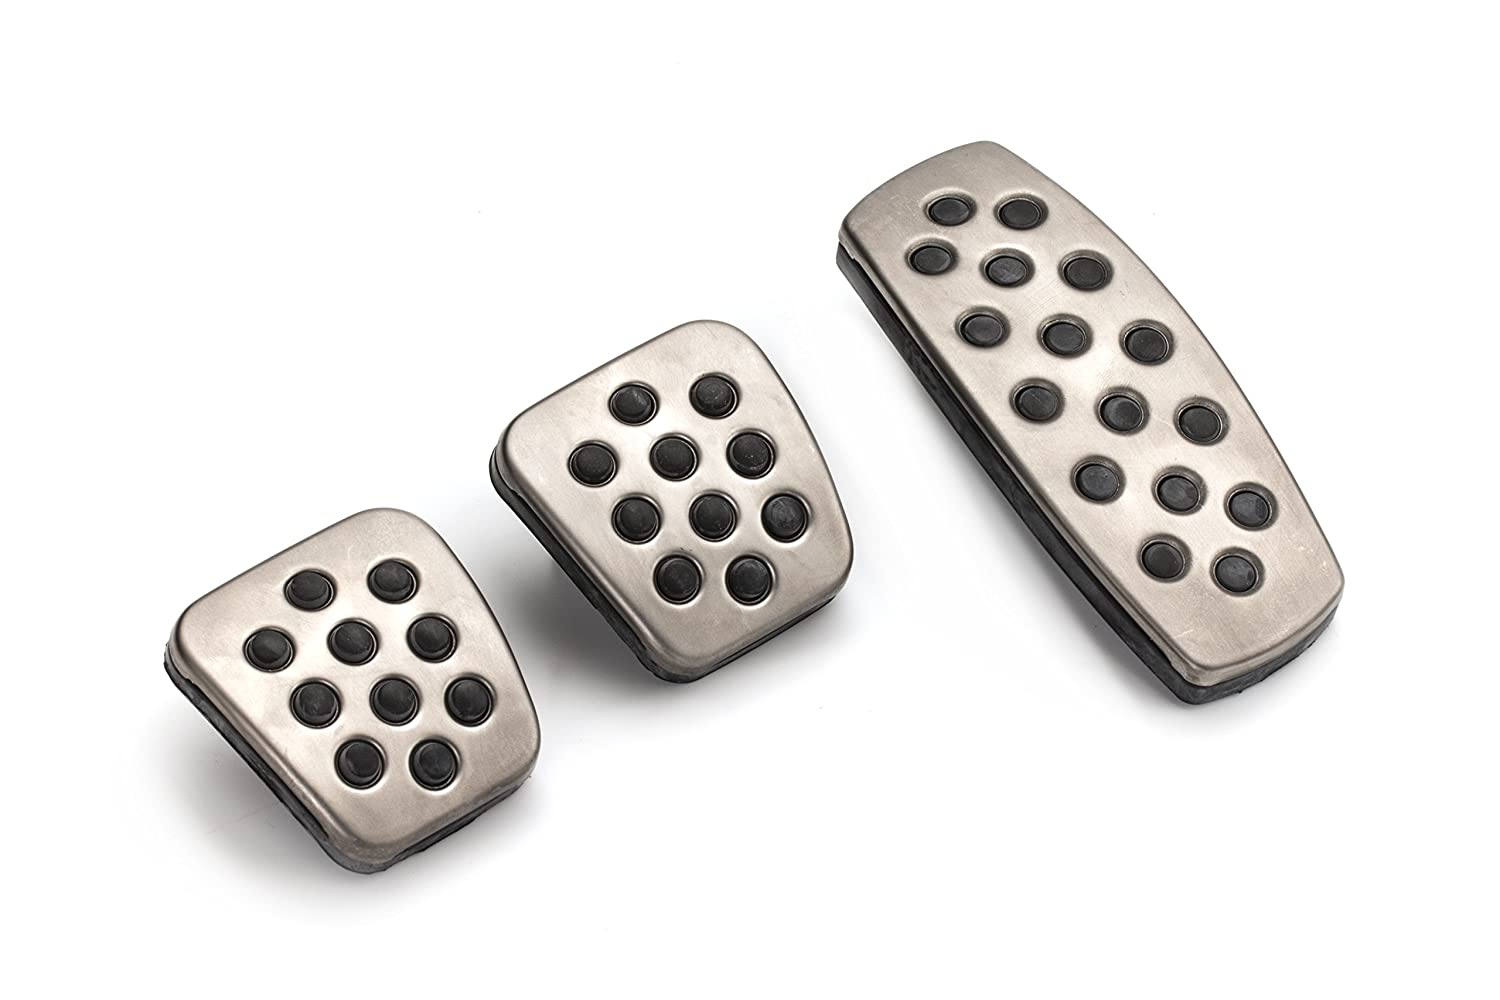 GM Accessories 13301696 Pedal Covers in Stainless Steel and Black General Motors